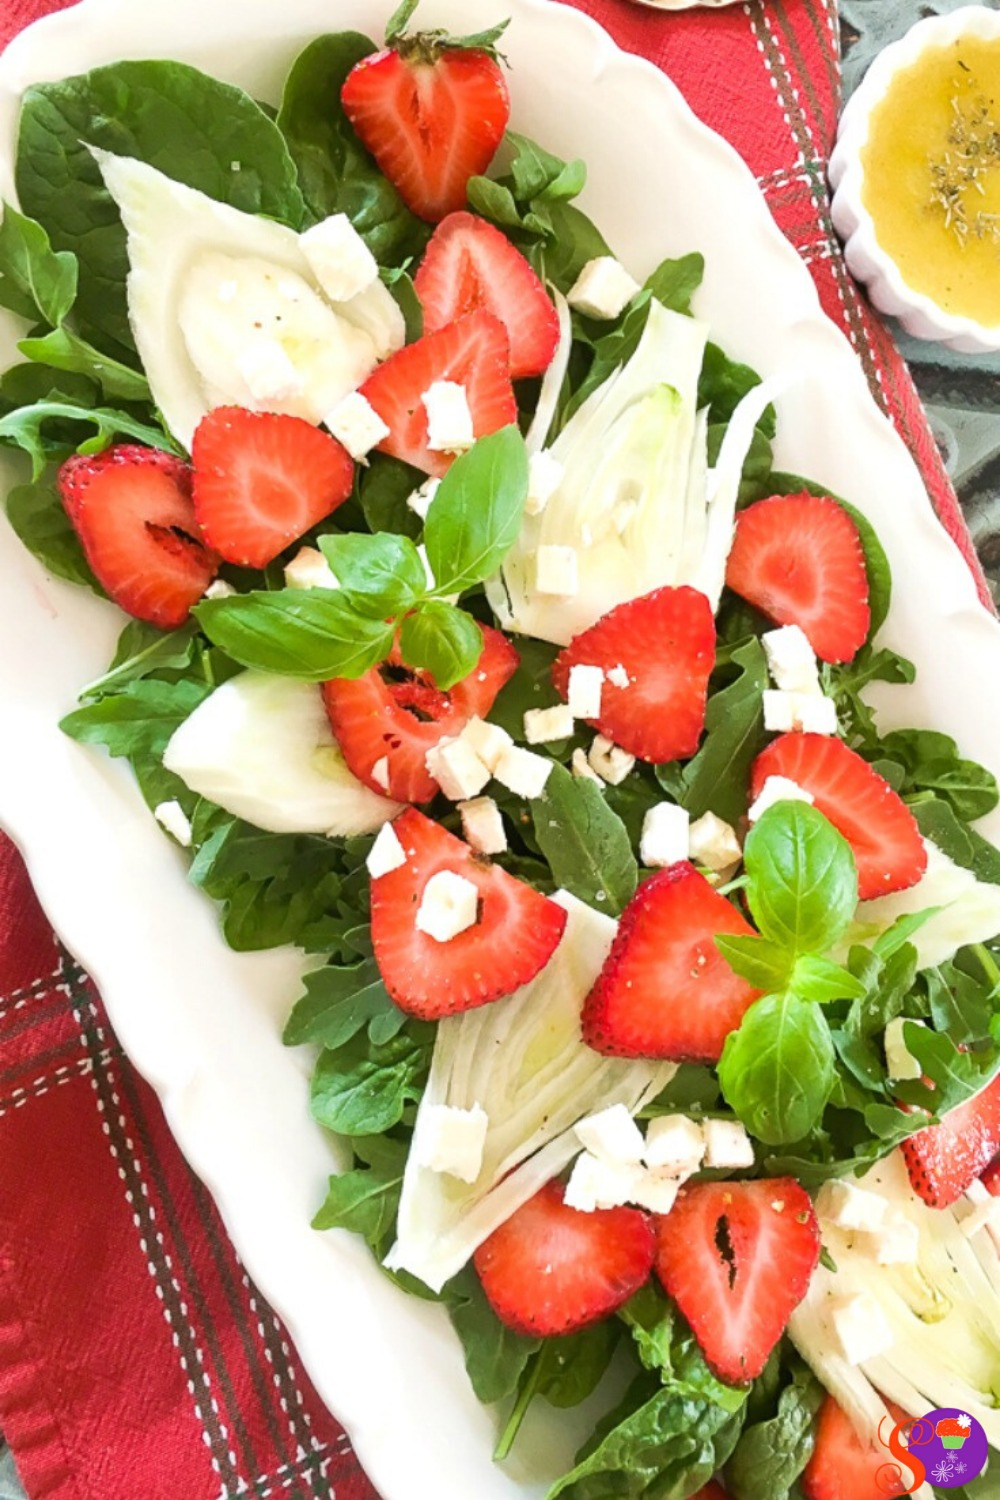 A delightful mixture of fresh baby spinach, arugula, juicy strawberries, crisp fennel, and feta cheese, this salad has a great balance of savory and sweet, crunchy and creamy soft. And, once it's topped off with my savory homemade balsamic dressing, it's packed full of flavor.